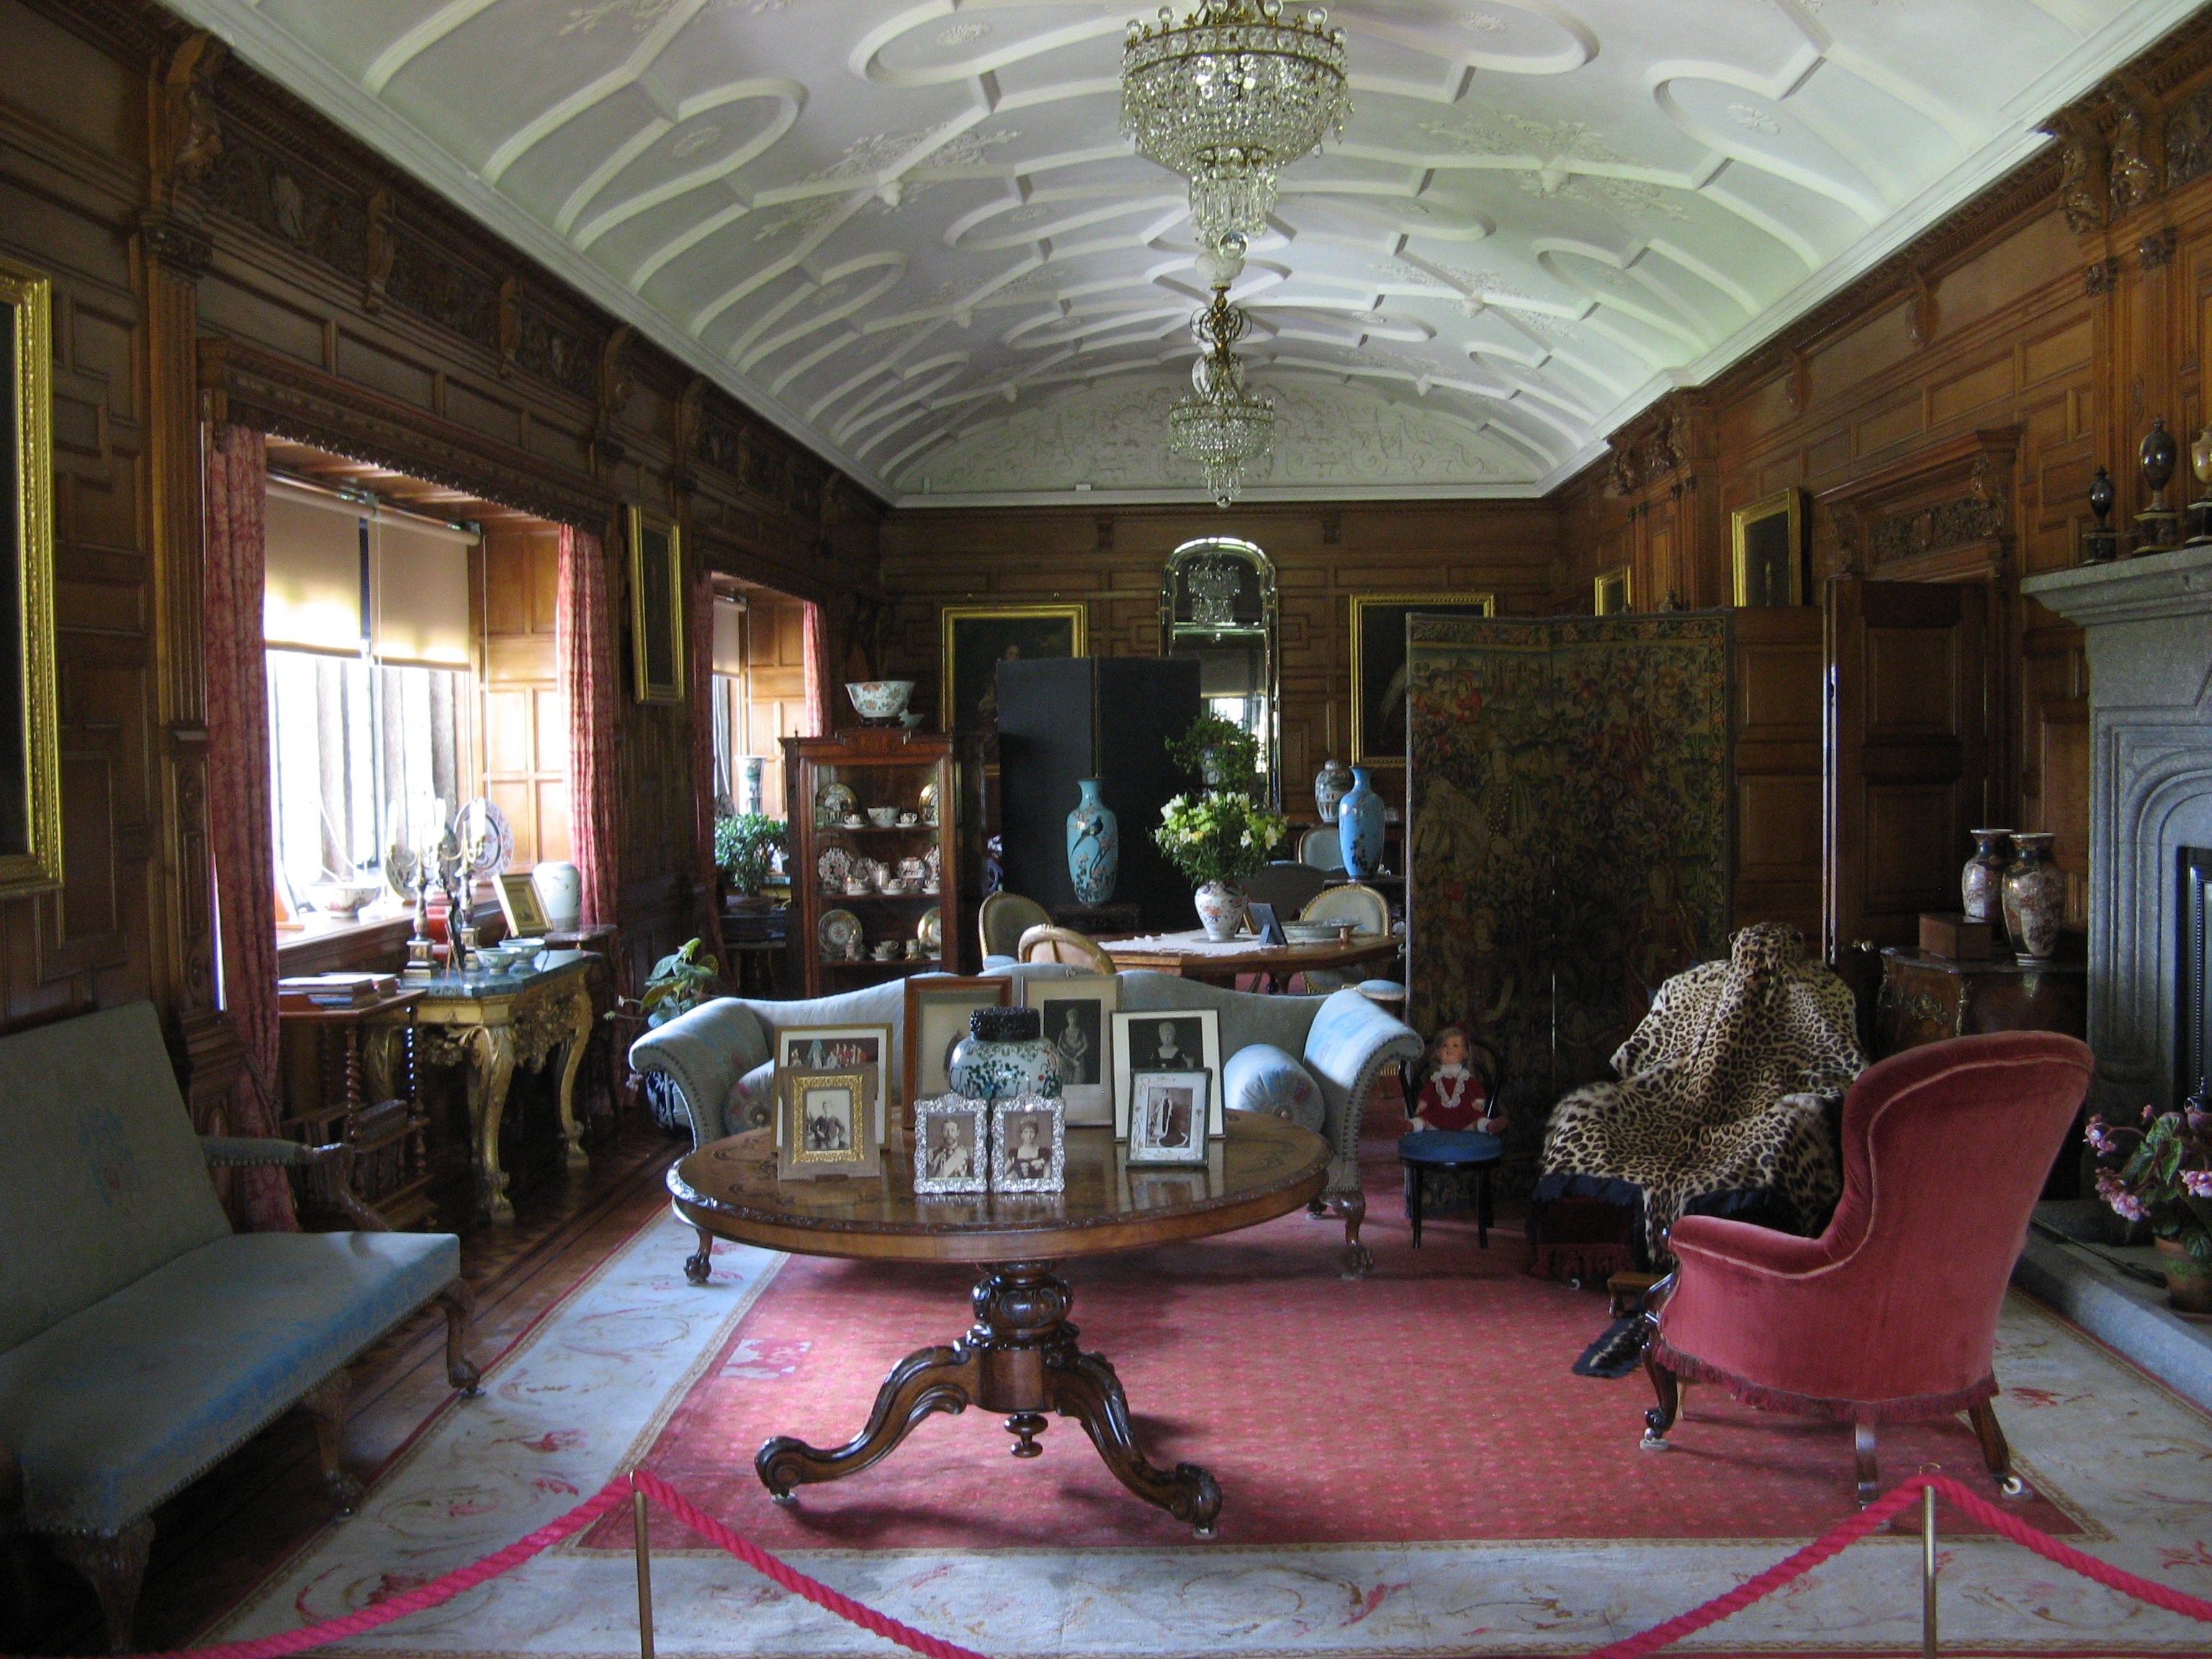 File:Lanhydrock House, Drawing Room.jpg